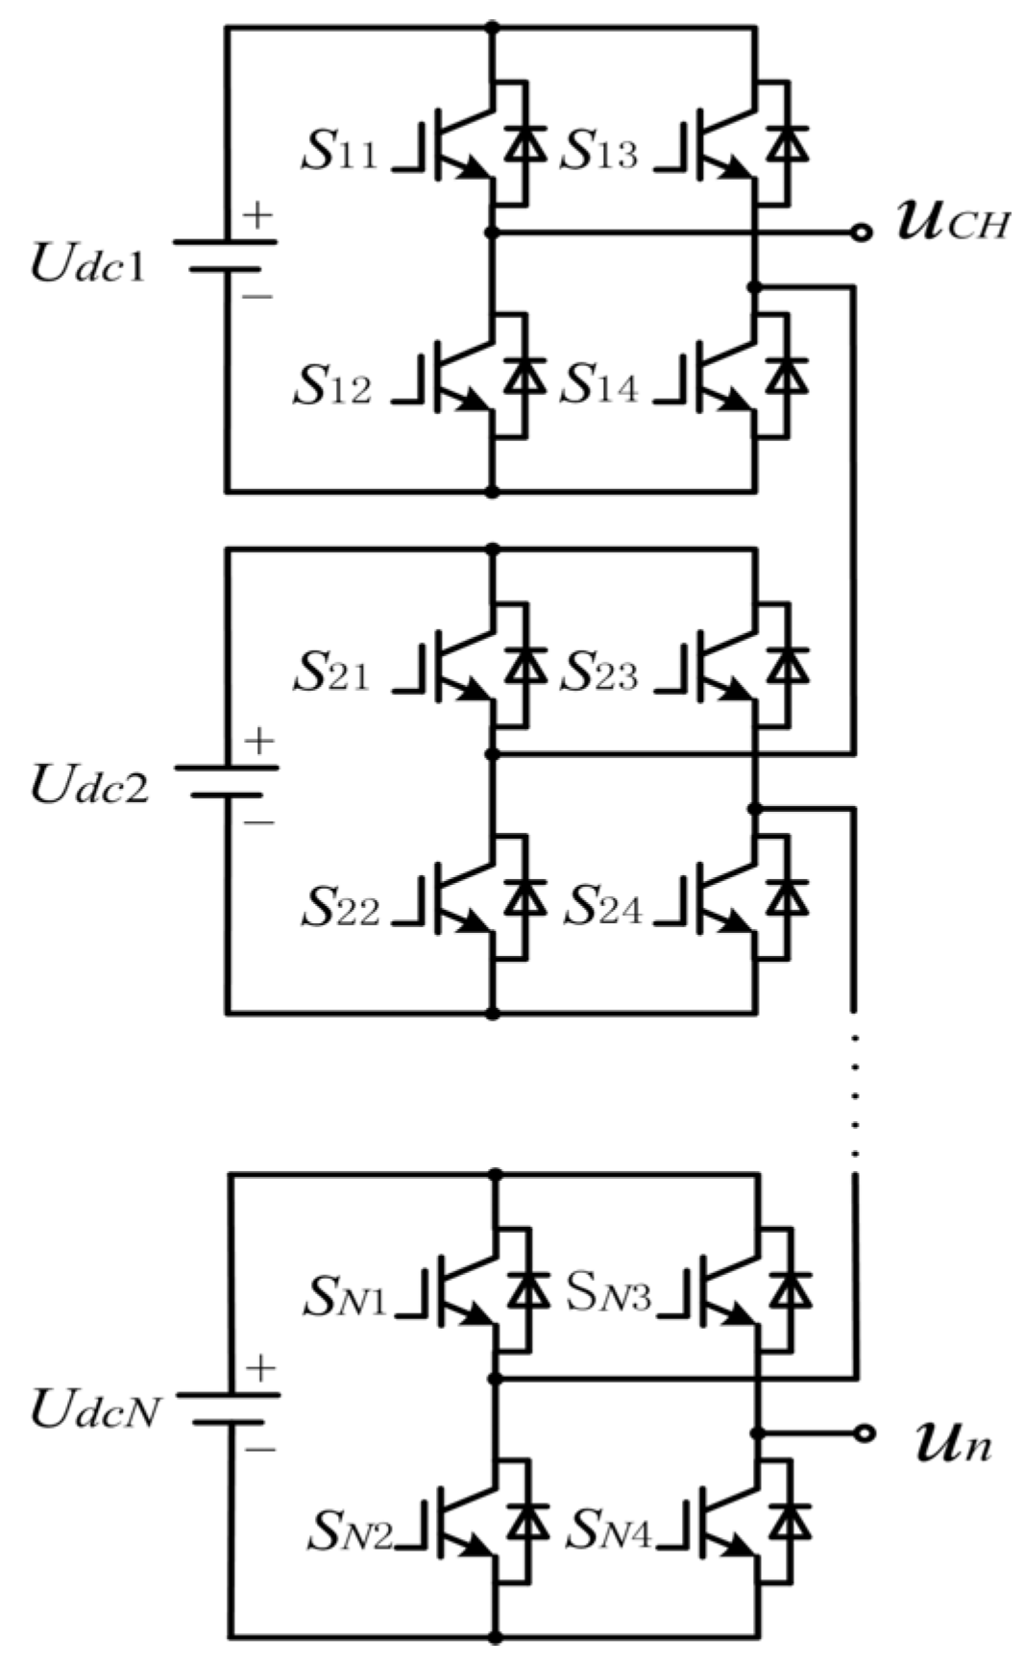 Mr Rectifier Transformers Fig likewise Phase Shifting Pulse Above Is General Ex le Of Parallel Resonance Capacitor In Parallel With Transformer Is Resonant At Th Harmonic also Maximise Efficiency Reliability Maintain Healthy Electrical  work With Harmonicless additionally Aravind Naragund Kv Ecd additionally Energies G. on 12 pulse phase shifting transformer